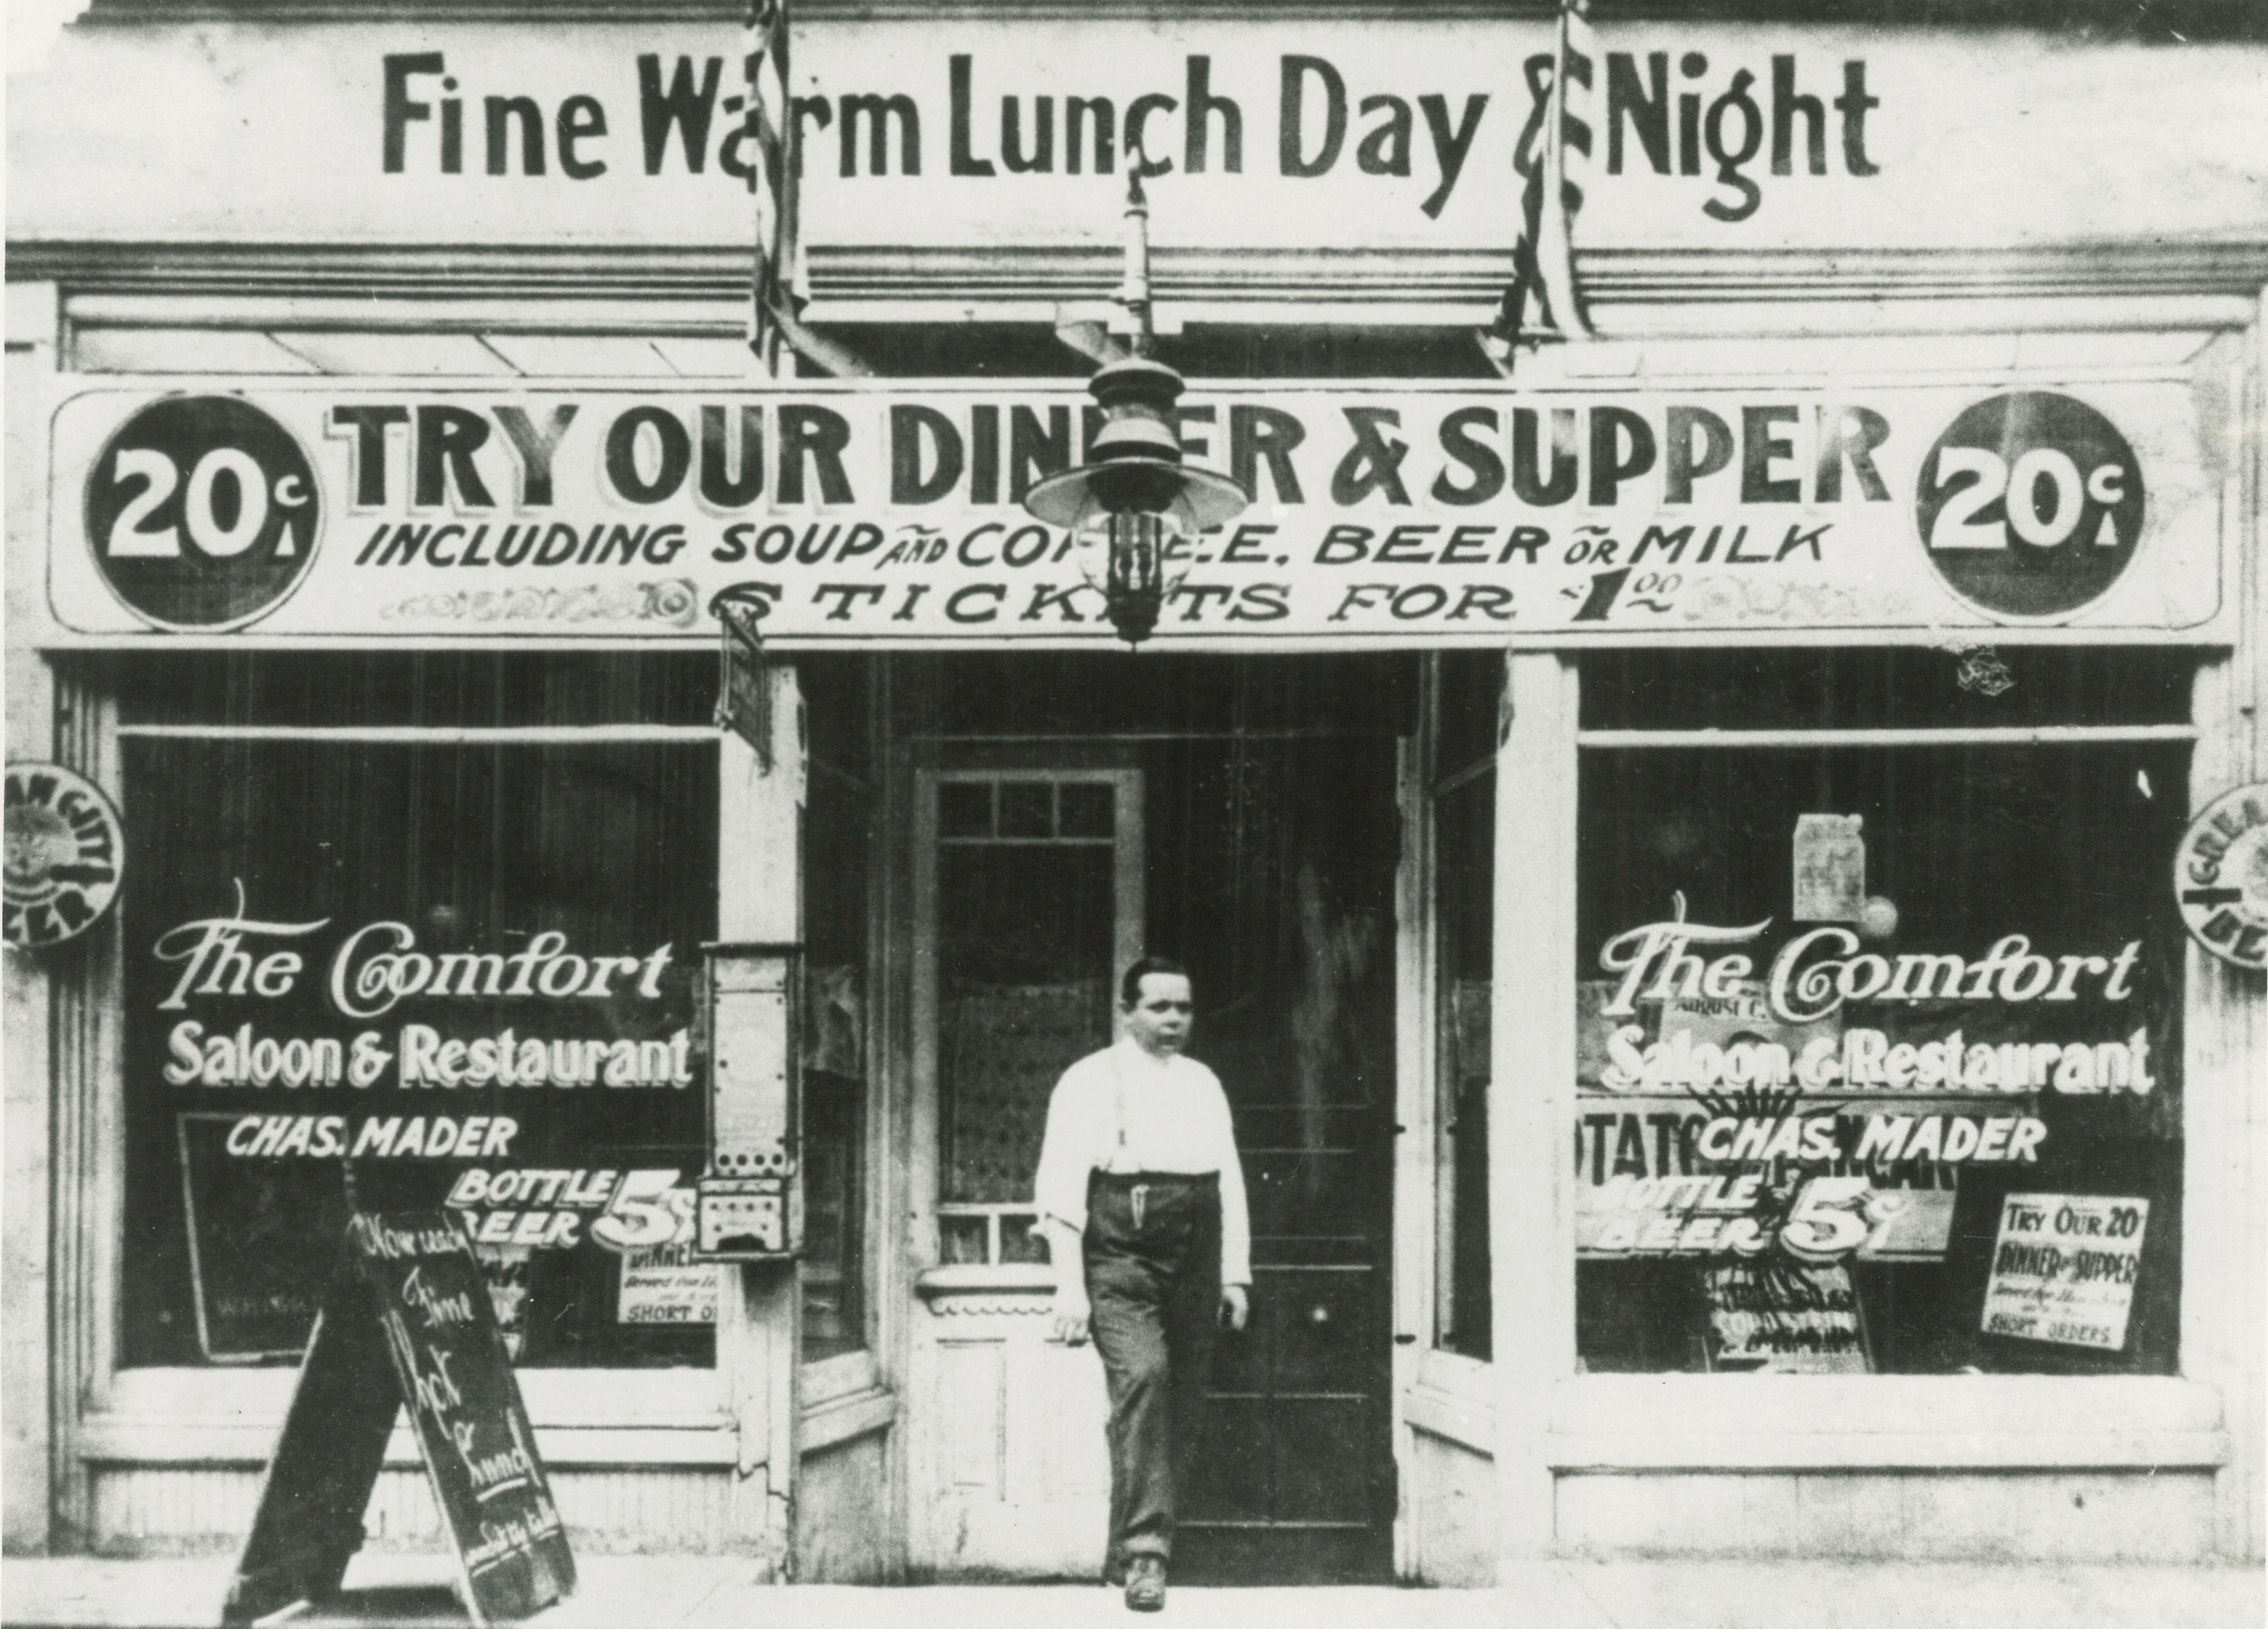 <table class=&quot;lightbox&quot;><tr><td colspan=2 class=&quot;lightbox-title&quot;>Mader's Restaurant</td></tr><tr><td colspan=2 class=&quot;lightbox-caption&quot;>Exterior view of Mader's Restaurant, located on Third Street. Its windows advertise meal specials.</td></tr><tr><td colspan=2 class=&quot;lightbox-spacer&quot;></td></tr><tr class=&quot;lightbox-detail&quot;><td class=&quot;cell-title&quot;>Source: </td><td class=&quot;cell-value&quot;>From the Historic Photo Collection of the Milwaukee Public Library. Reprinted with permission.<br /><a href=&quot;http://content.mpl.org/cdm/singleitem/collection/HstoricPho/id/3656/rec/3&quot; target=&quot;_blank&quot;>Milwaukee Public Library</a></td></tr><tr class=&quot;filler-row&quot;><td colspan=2>&nbsp;</td></tr></table>